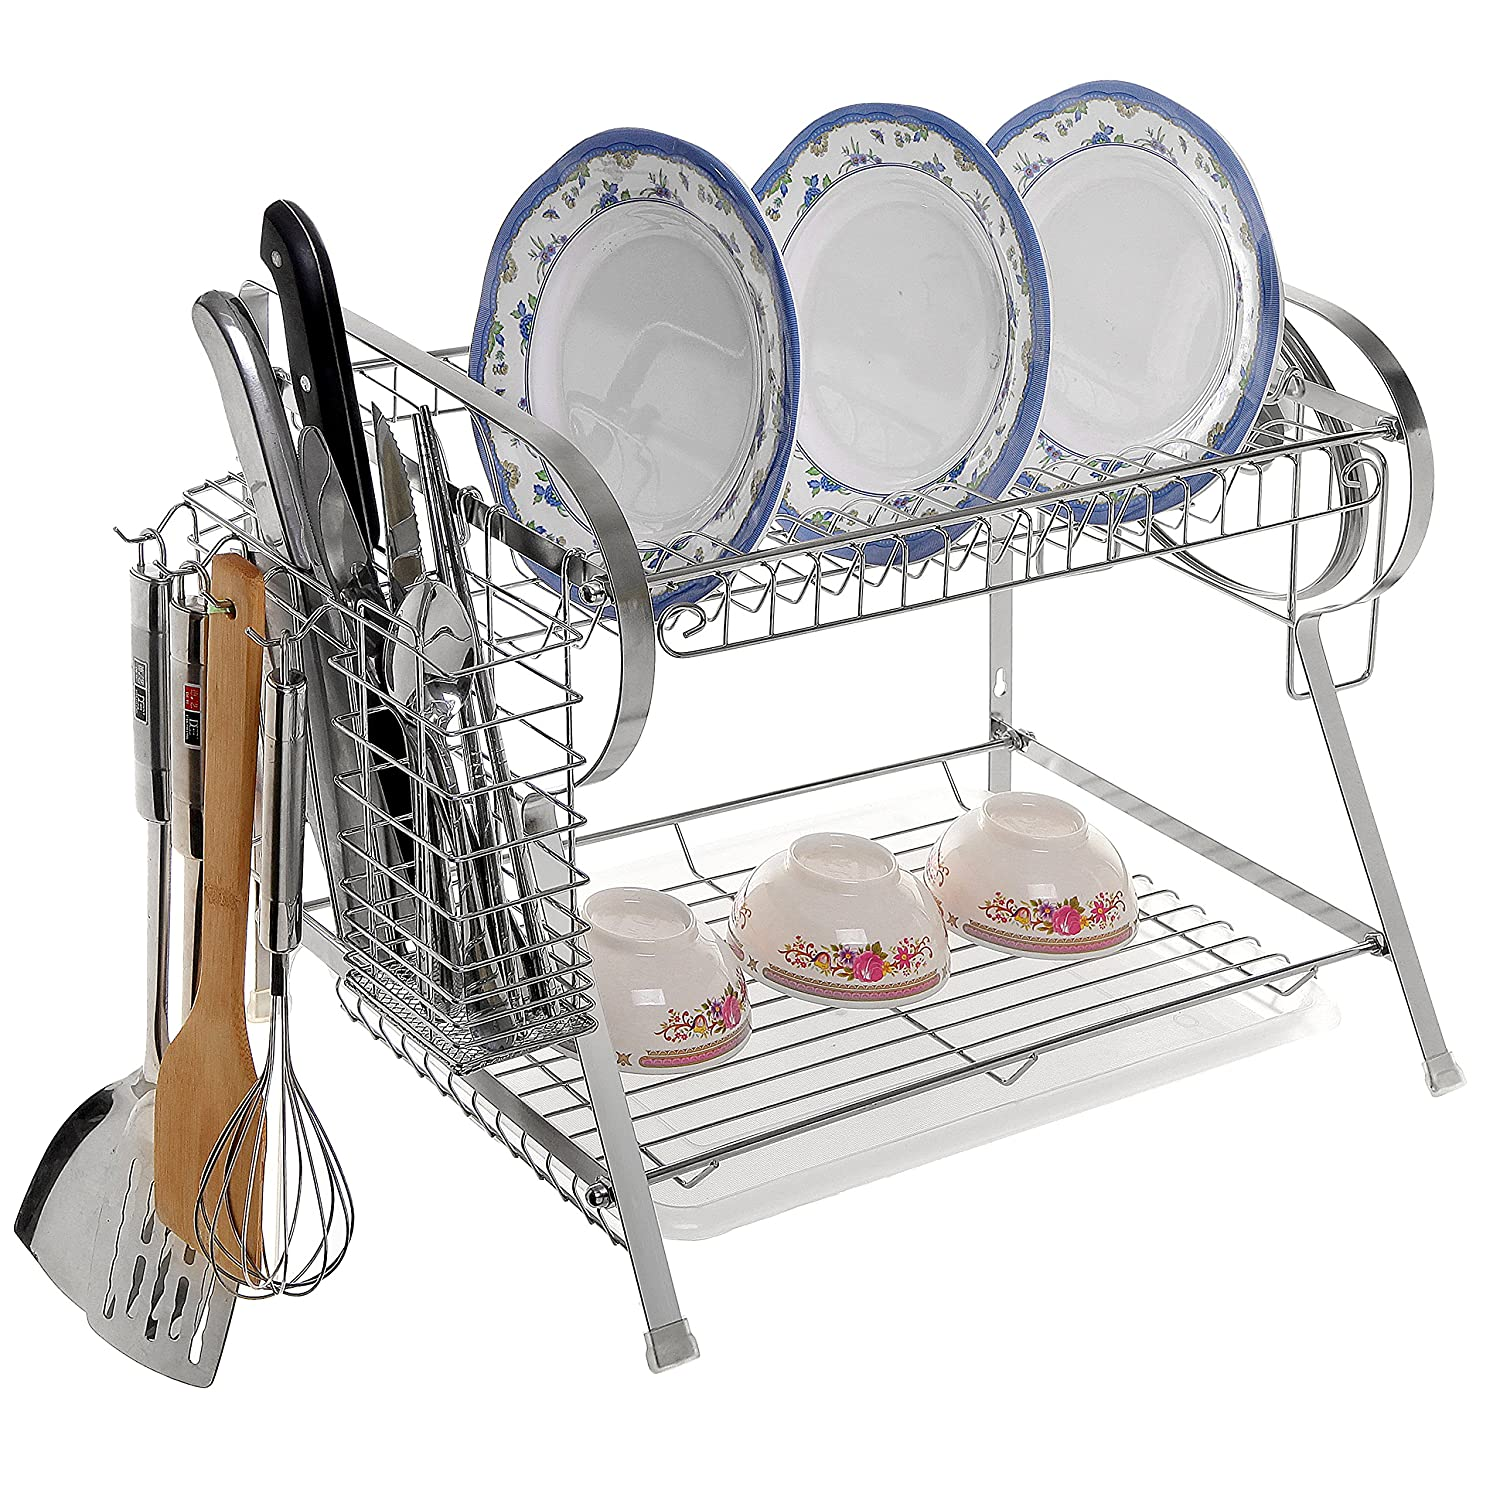 Amazon Modern Stainless Steel Kitchen Dish Drying Rack w